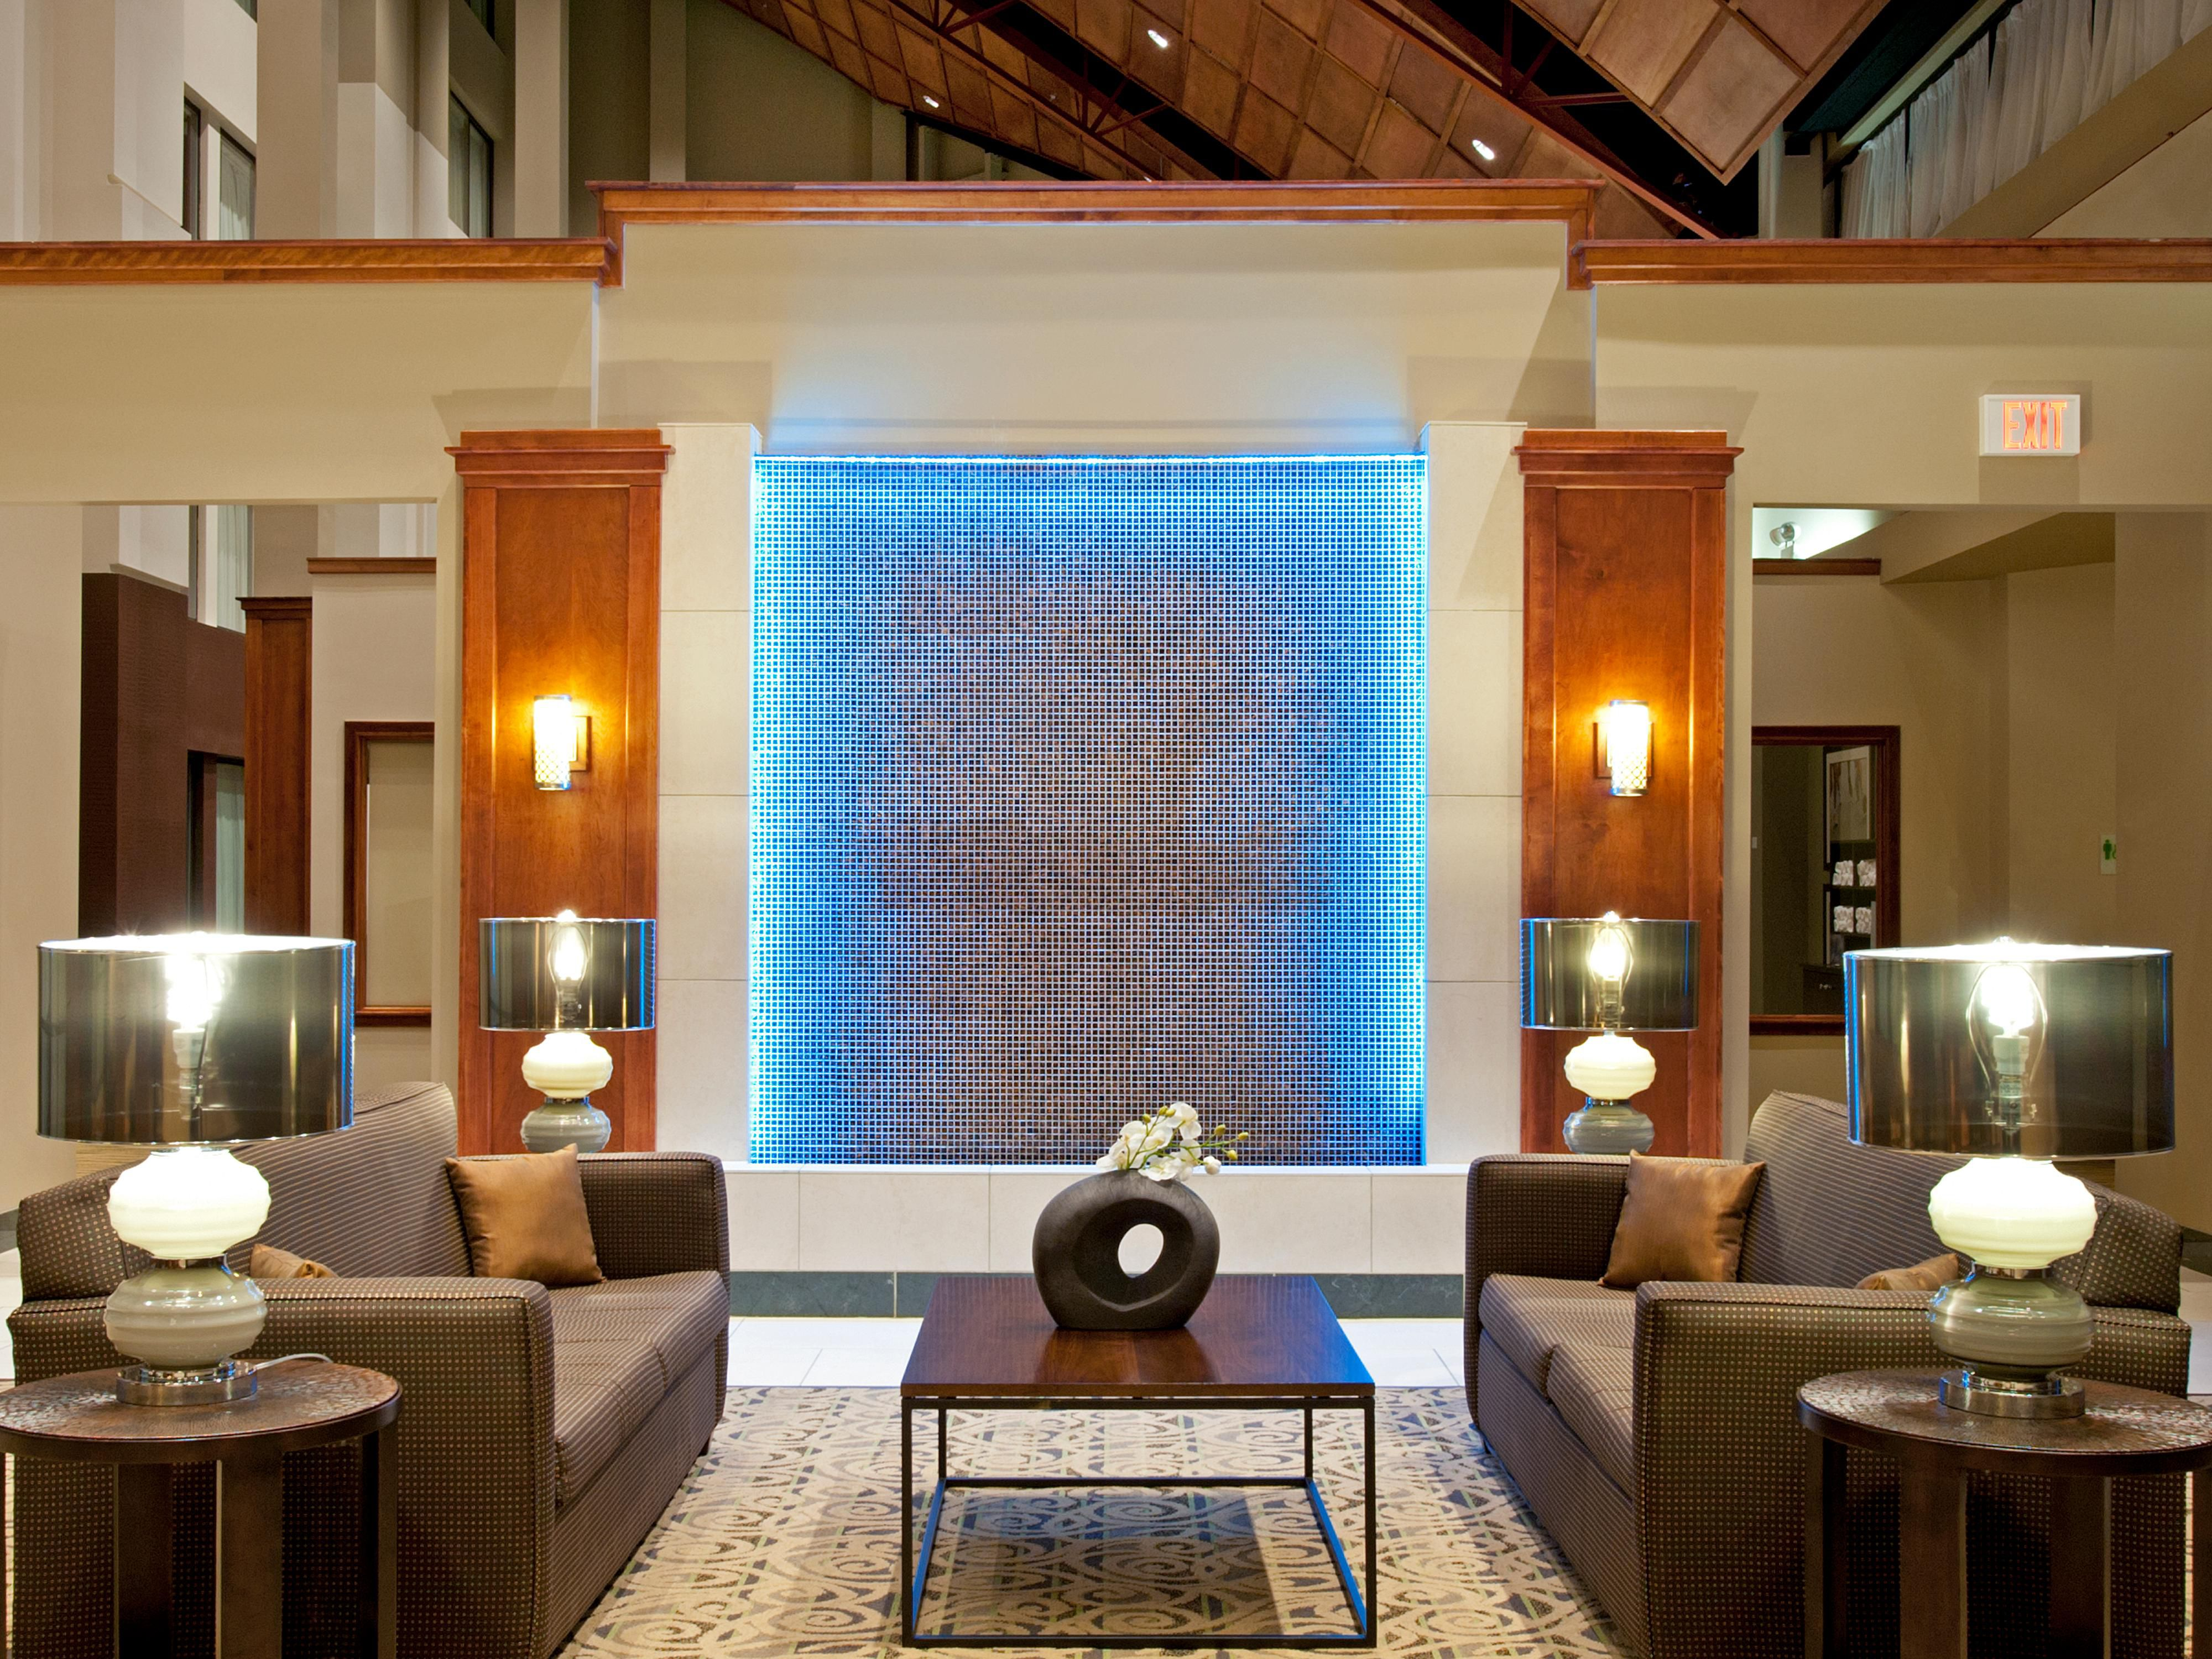 Dramatic Water Feature - Holiday Inn Itasca Lobby